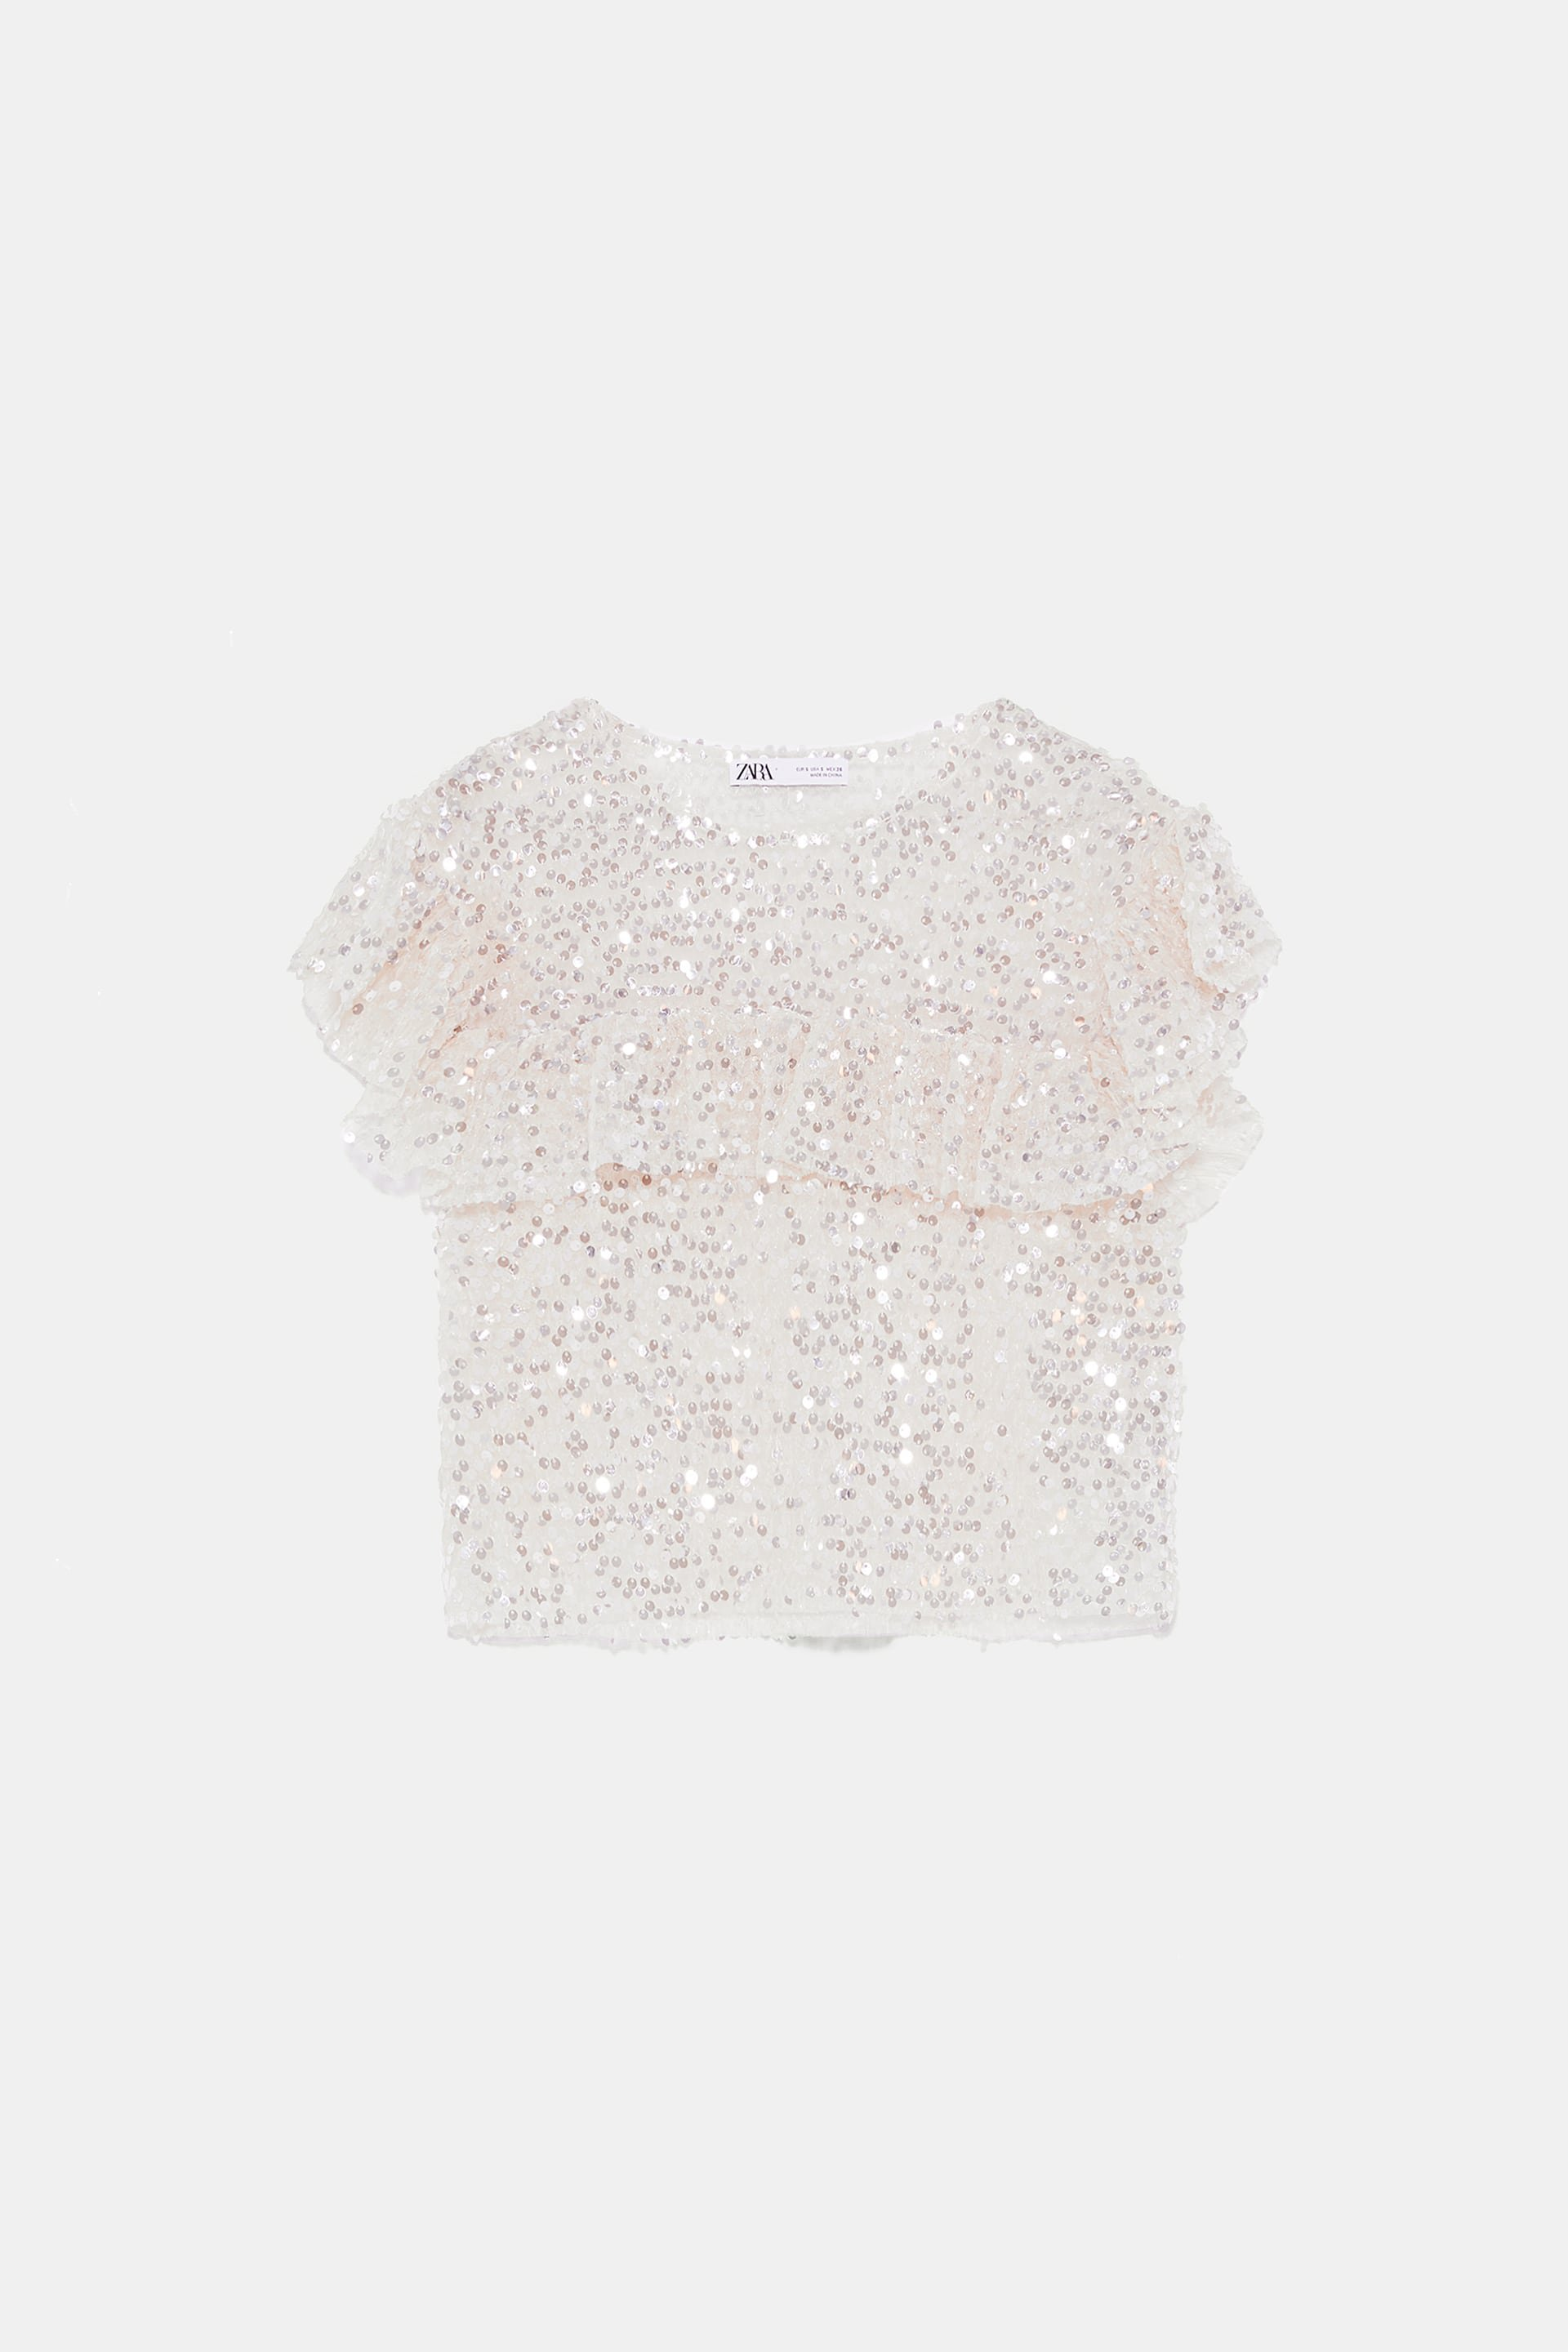 RUFFLED SEQUIN TOP - View all-KNITWEAR-WOMAN | ZARA United States